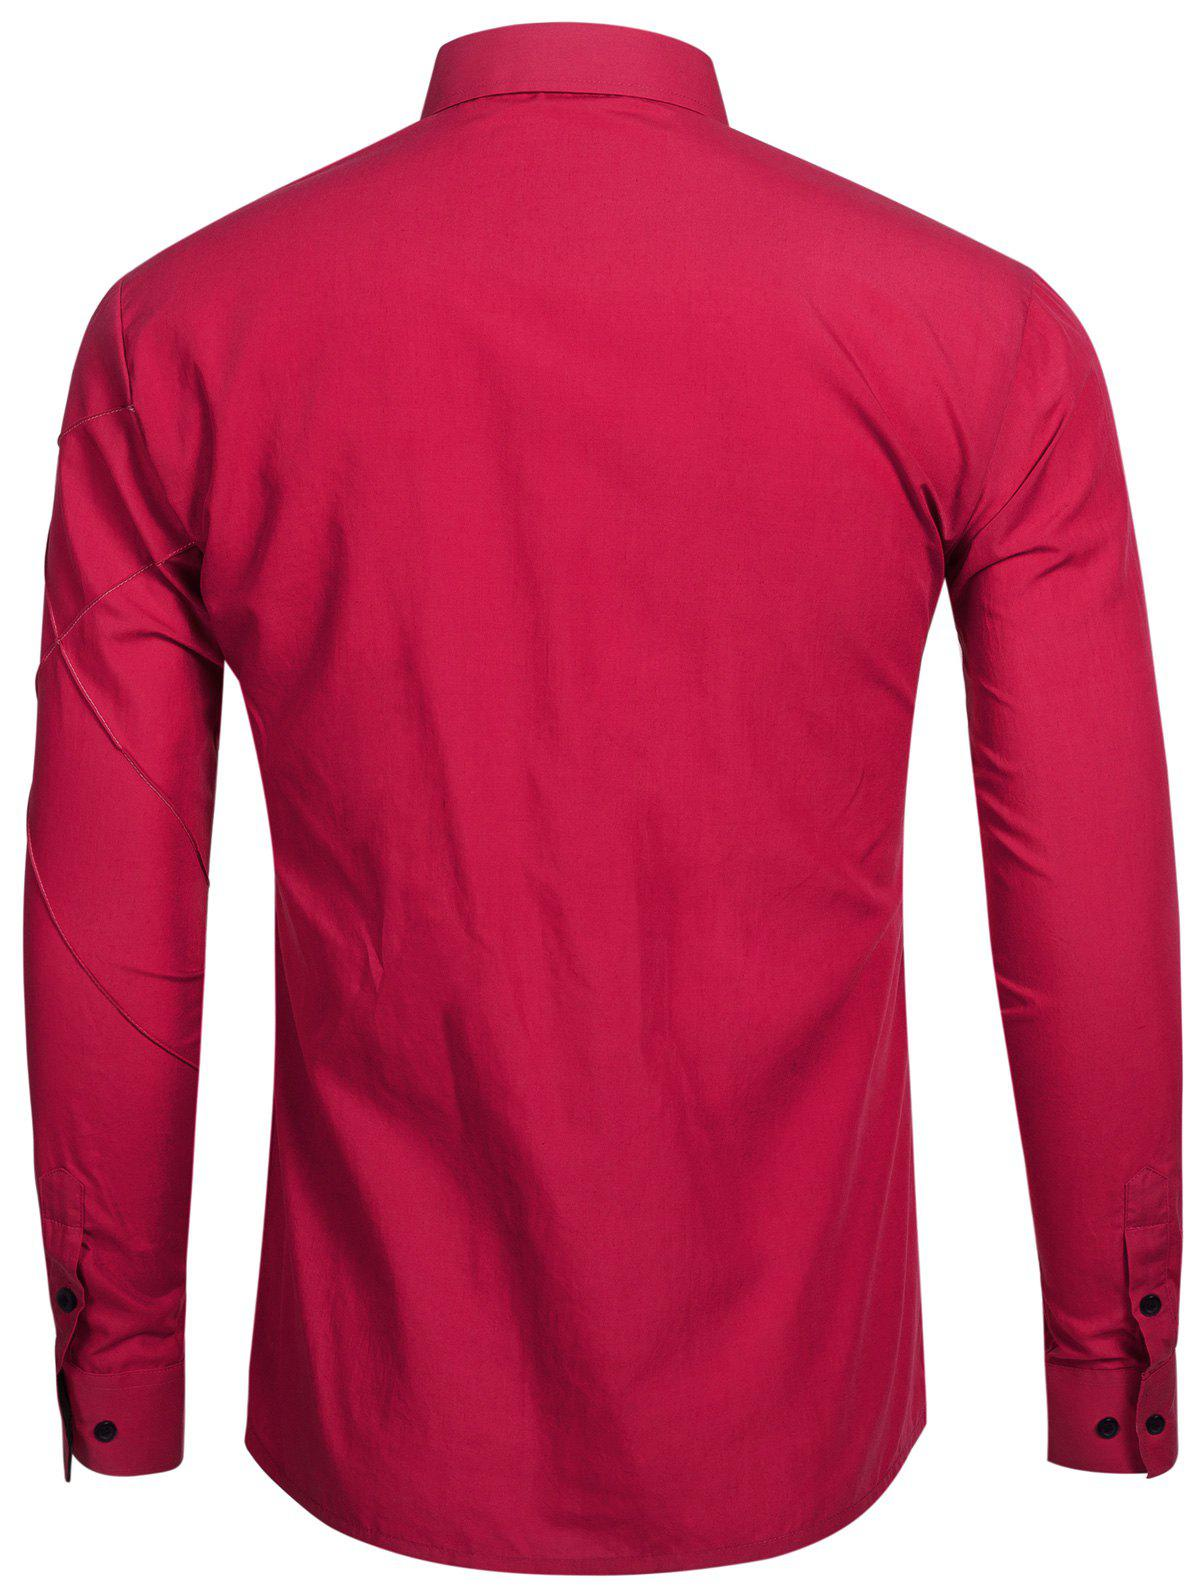 Piquez à manches longues Button Up Shirt - Rouge vineux 2XL